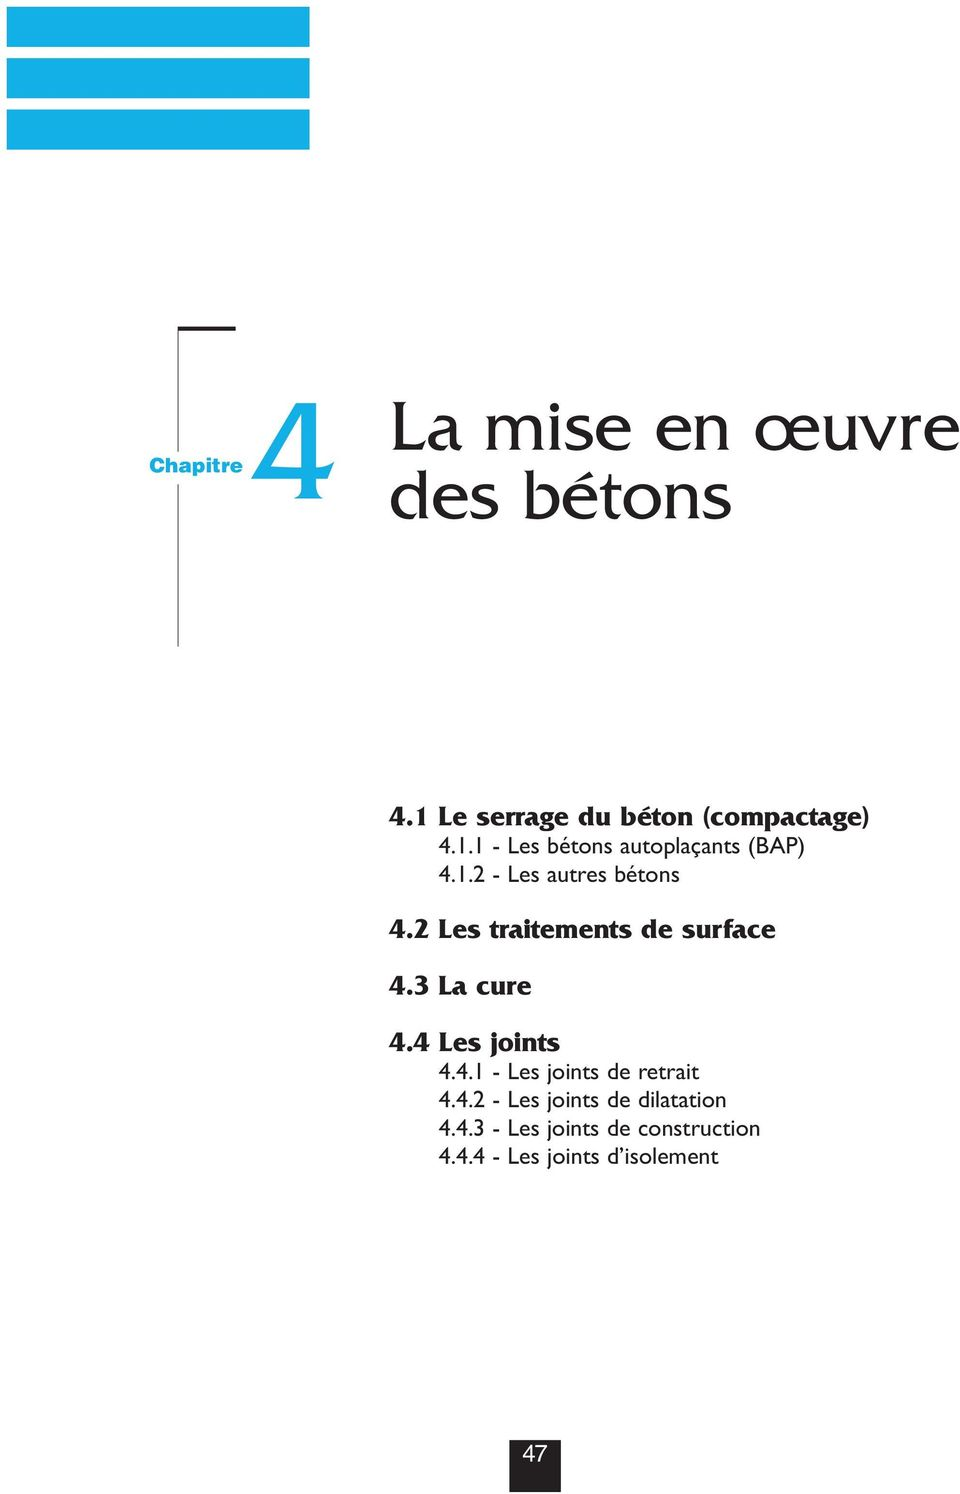 4 Les joints 4.4.1 - Les joints de retrait 4.4.2 - Les joints de dilatation 4.4.3 - Les joints de construction 4.